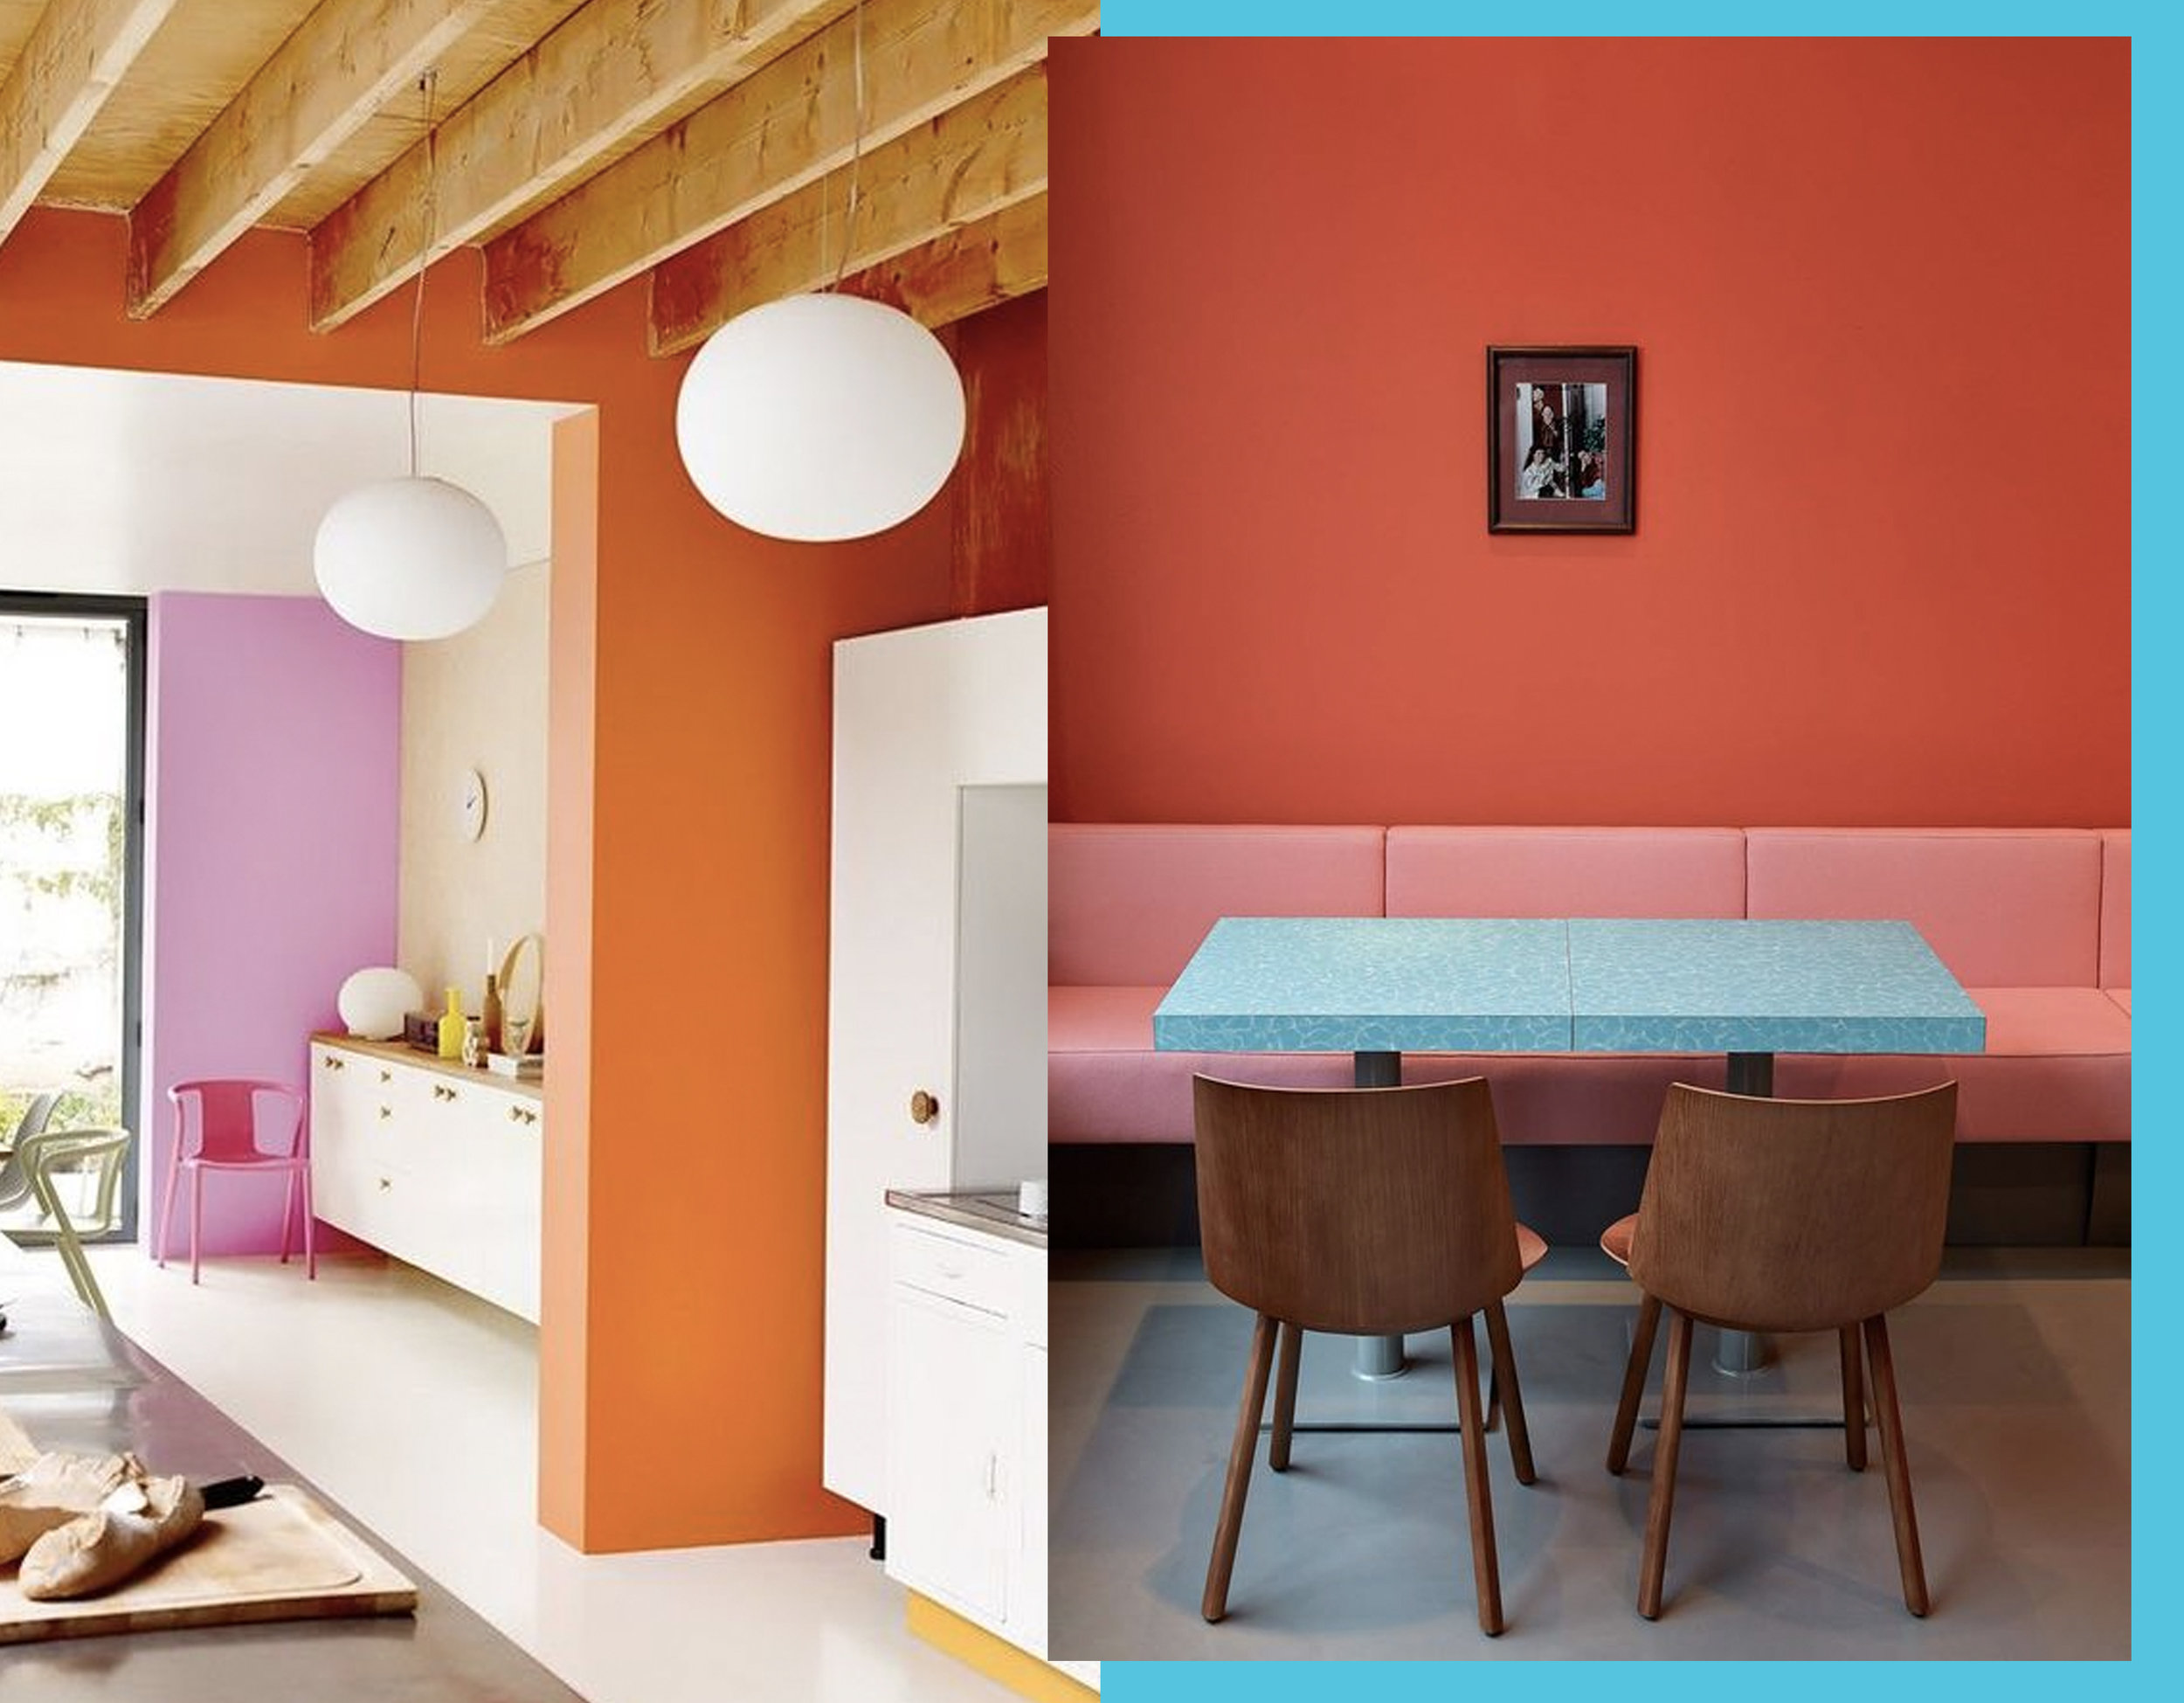 kitchen image via  My Domaine  - dining area inspiration via  Trendland